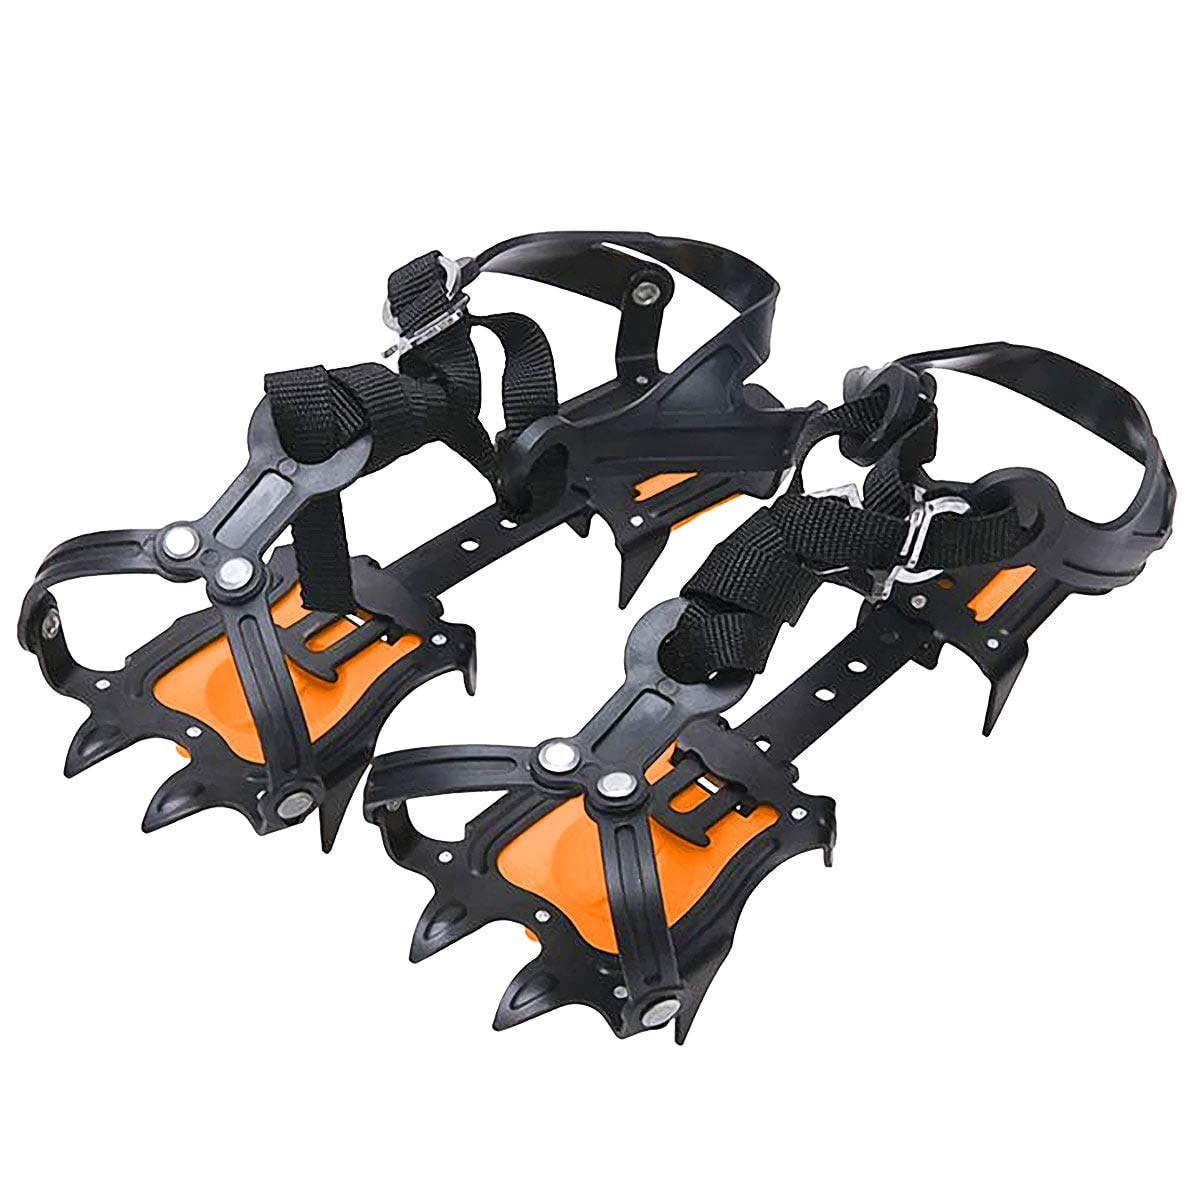 Walsilk Crampons Traction Cleats Spikes Snow Grips,Anti-Slip Stainless Steel Crampons for Mountaineering & Ice Climbing by Walsilk